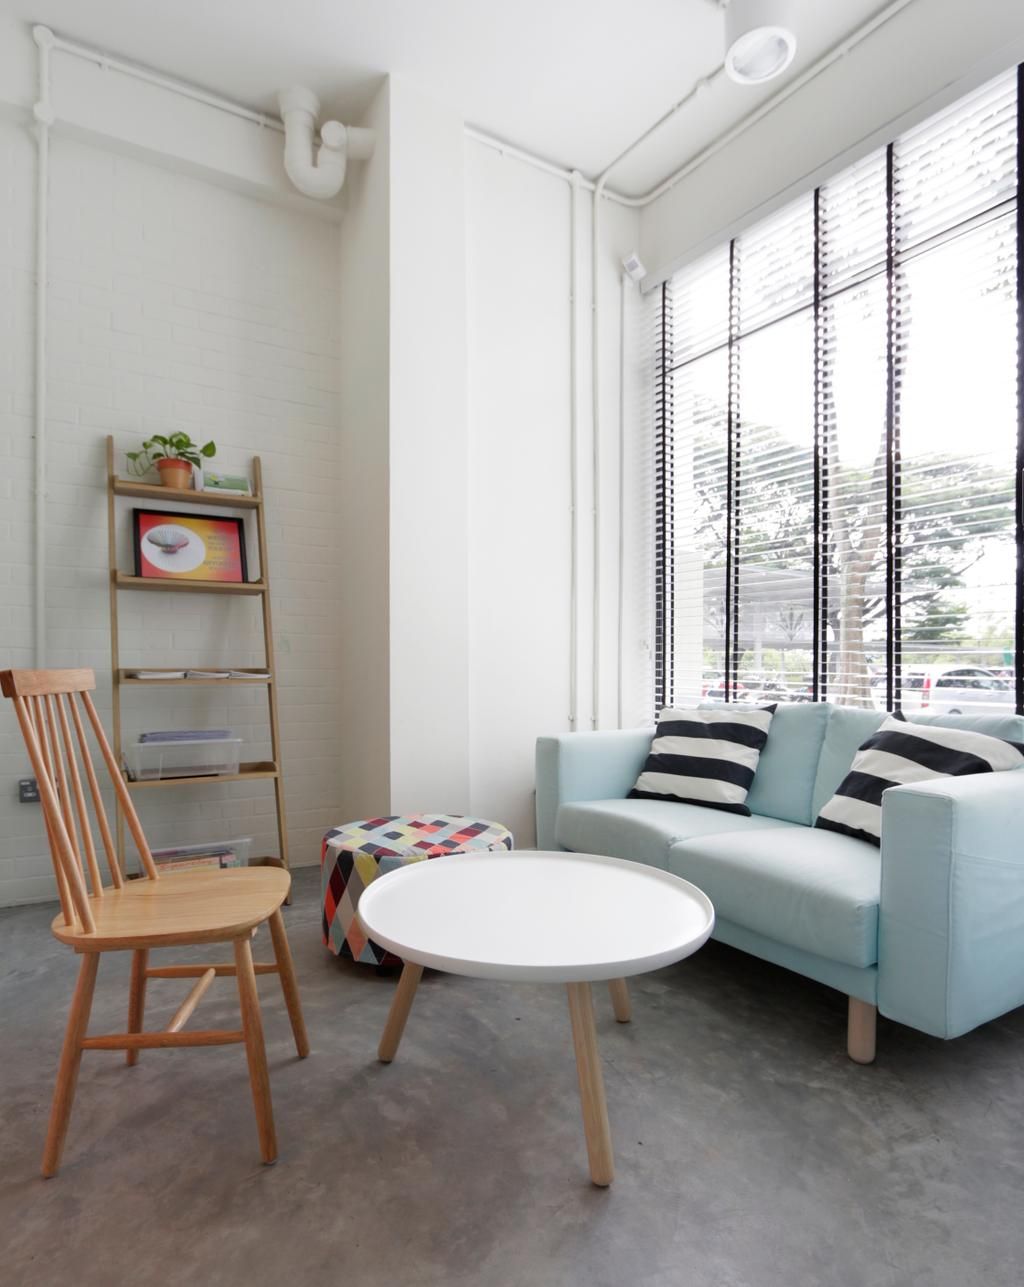 VOX Youth Centre, Commercial, Architect, EHKA Studio, Minimalistic, Living Room, Sofa, Baby Blue, Pastel, Pastel Colours, Light Blue, Loveseat, Coffee Table, Round Table, Chairs, Ladder Rack, Ladder Shelf, Wall Shelf, Ottoman, Bright, Airy, Chair, Furniture, Home Decor, Linen, Tablecloth, Sink